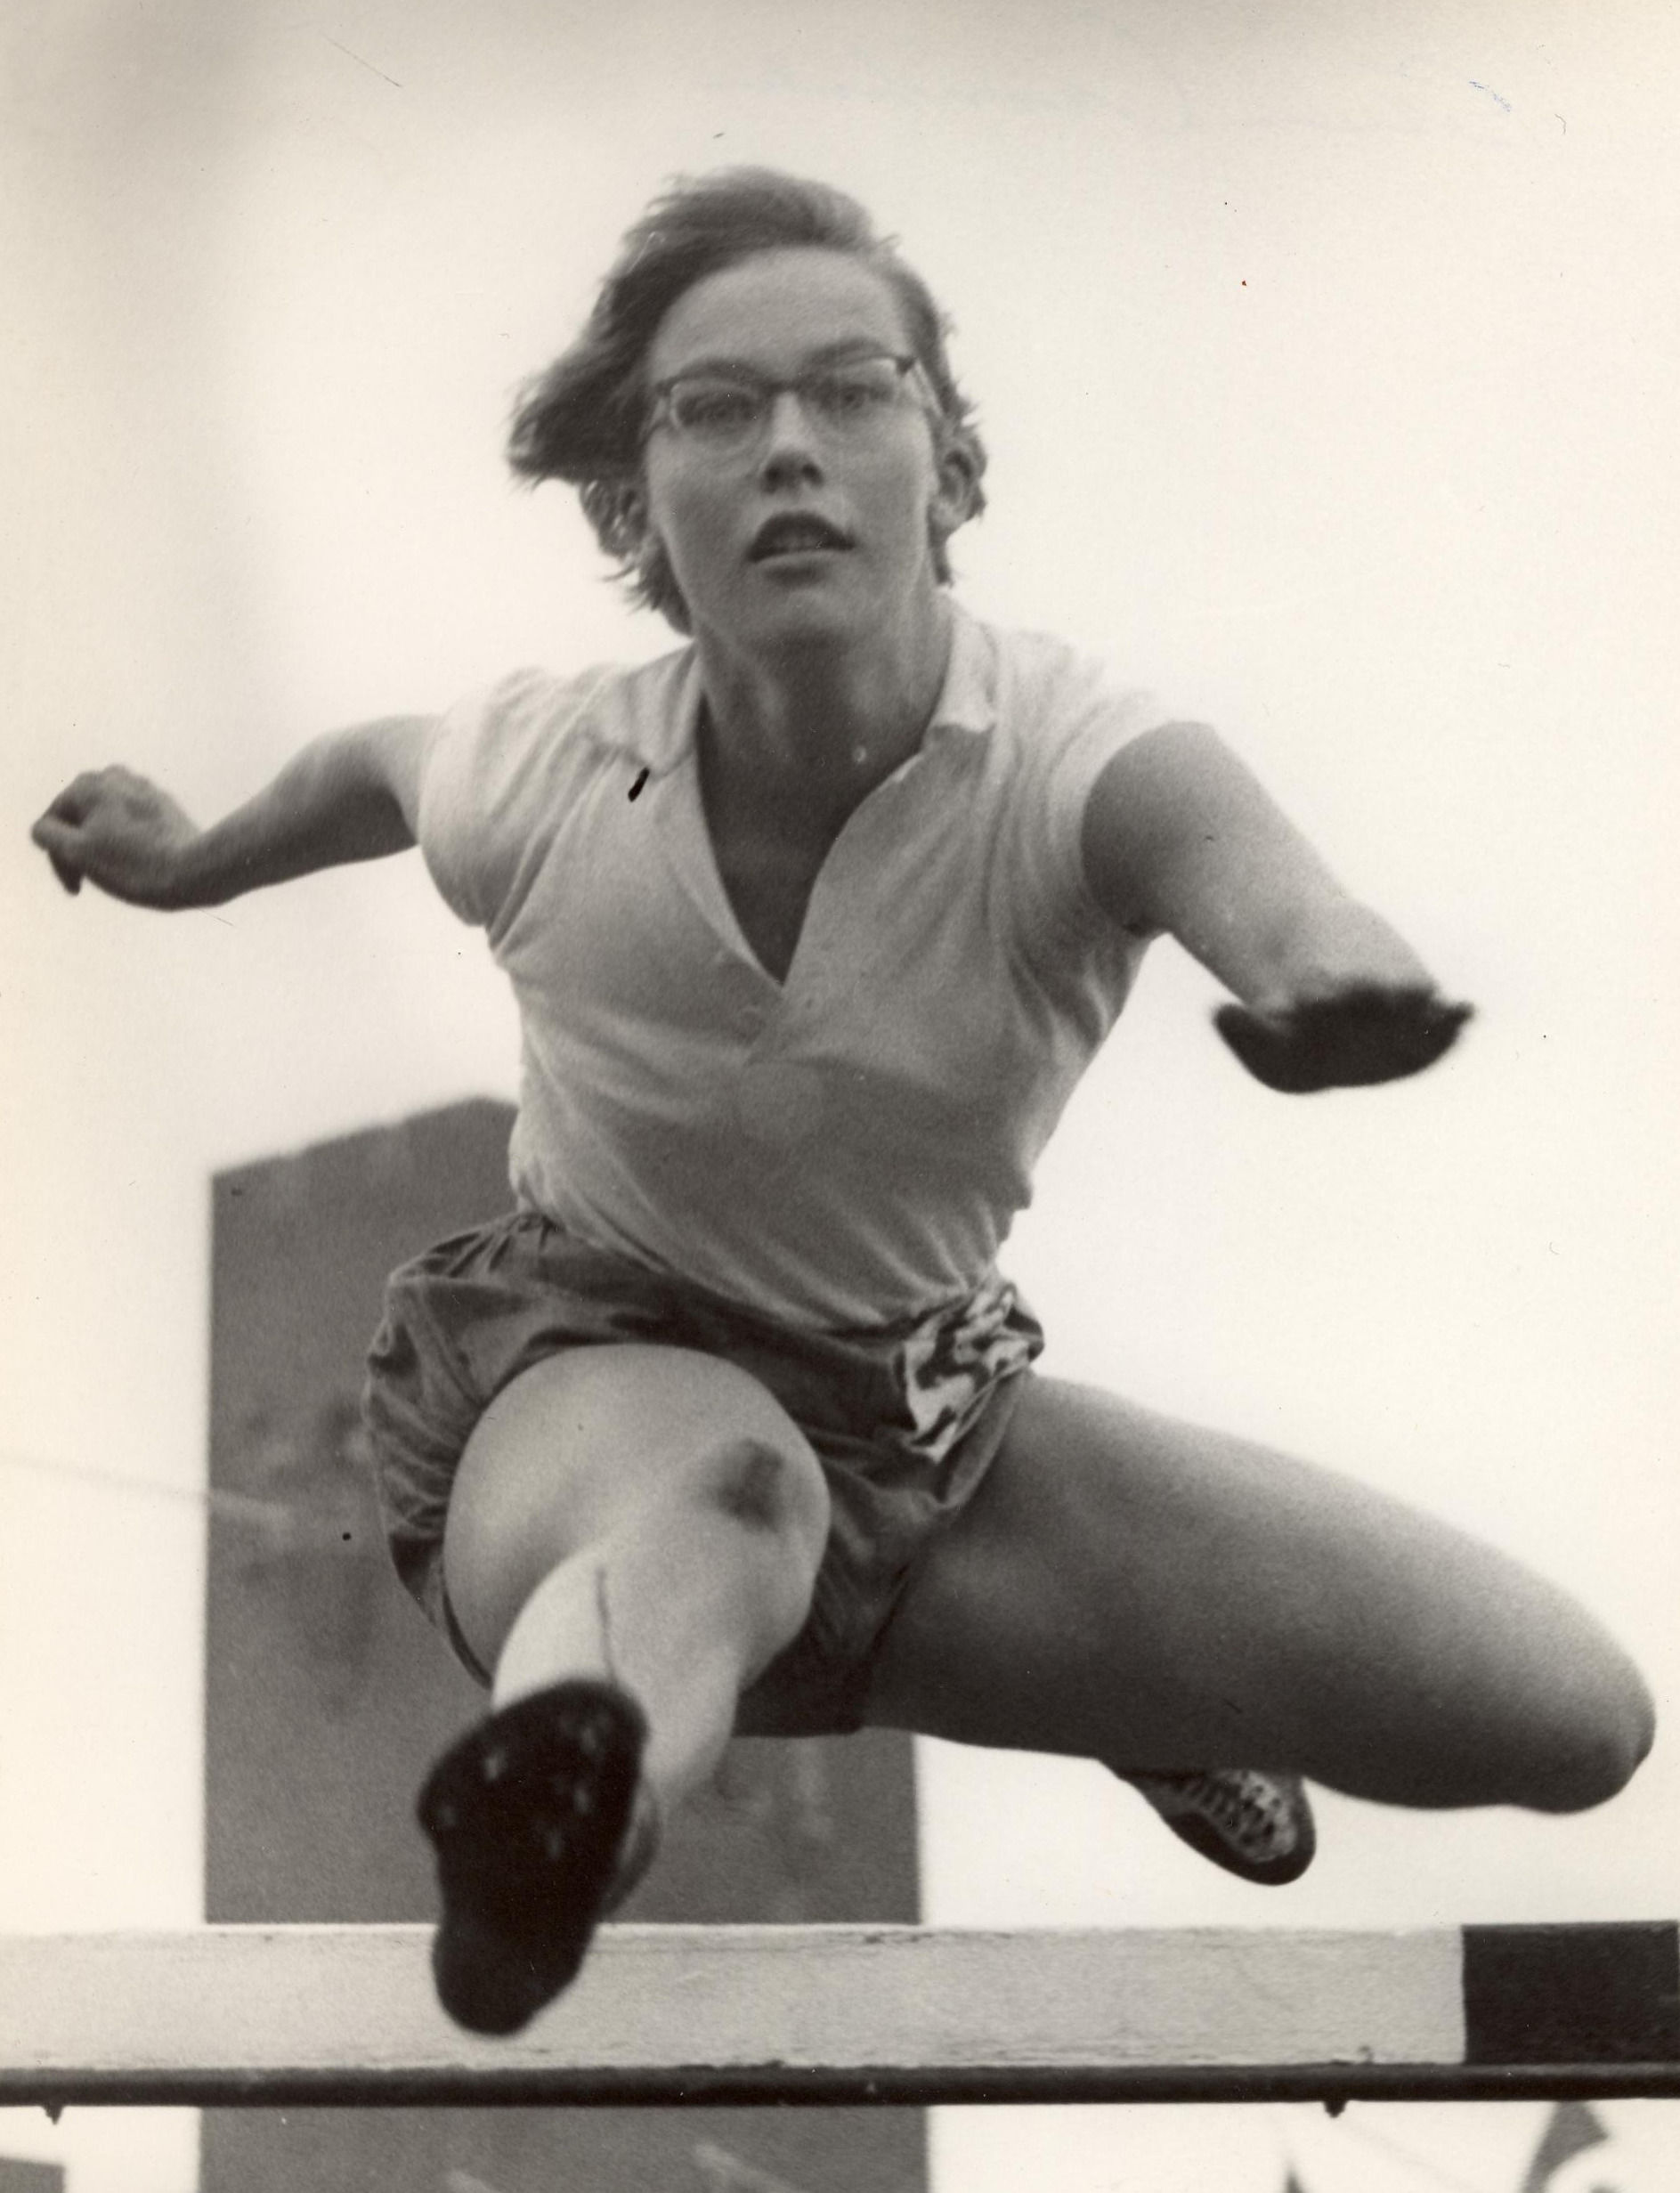 Photo of Stina Cronholm: Swedish athletics competitor